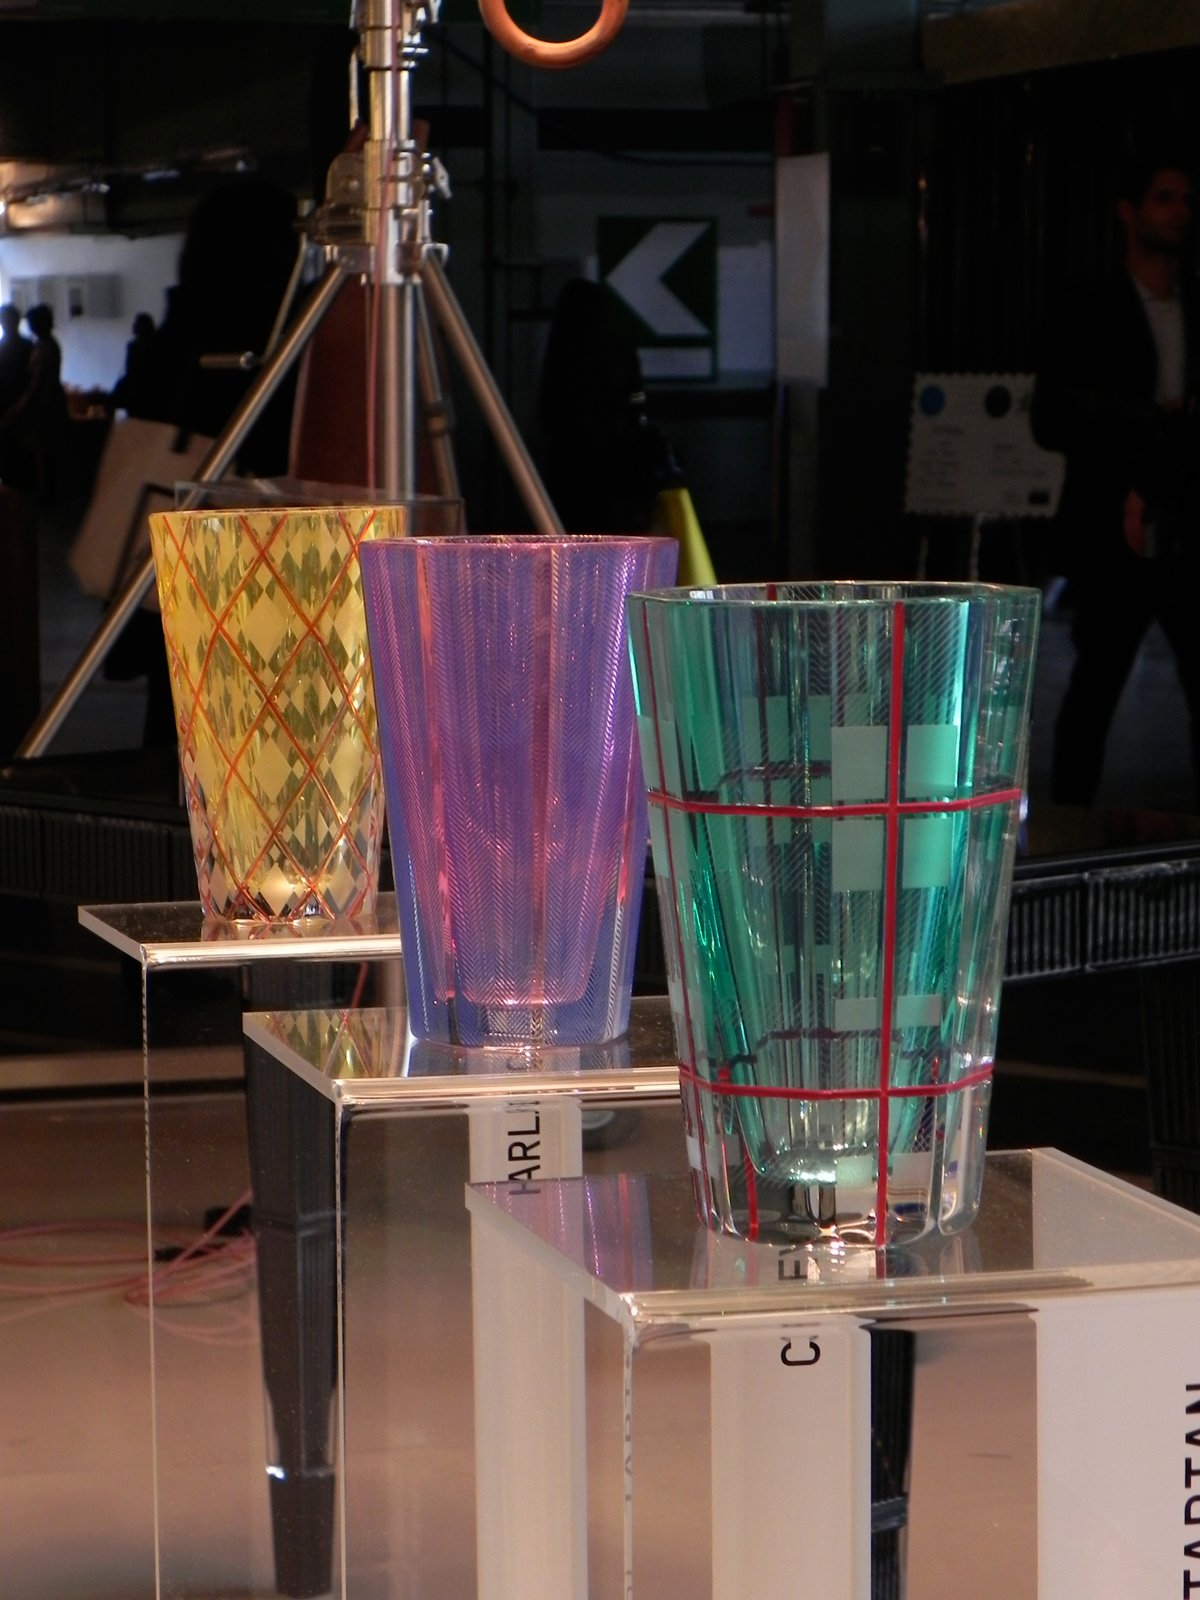 Also on show at Design Junction was a collection of glassware designed by students of the Luxury Industry and Design course at Switzerland's prestigious ECAL academy. The pieces were produced by Baccarat and the show was curated by London-based designer Bethan Laura Wood. Shown here are Chevron, Tartan, and Harlequin by Spanish and American designers Ana Varela and David Luraschi.  London Design Festival 2012 by Ali Morris